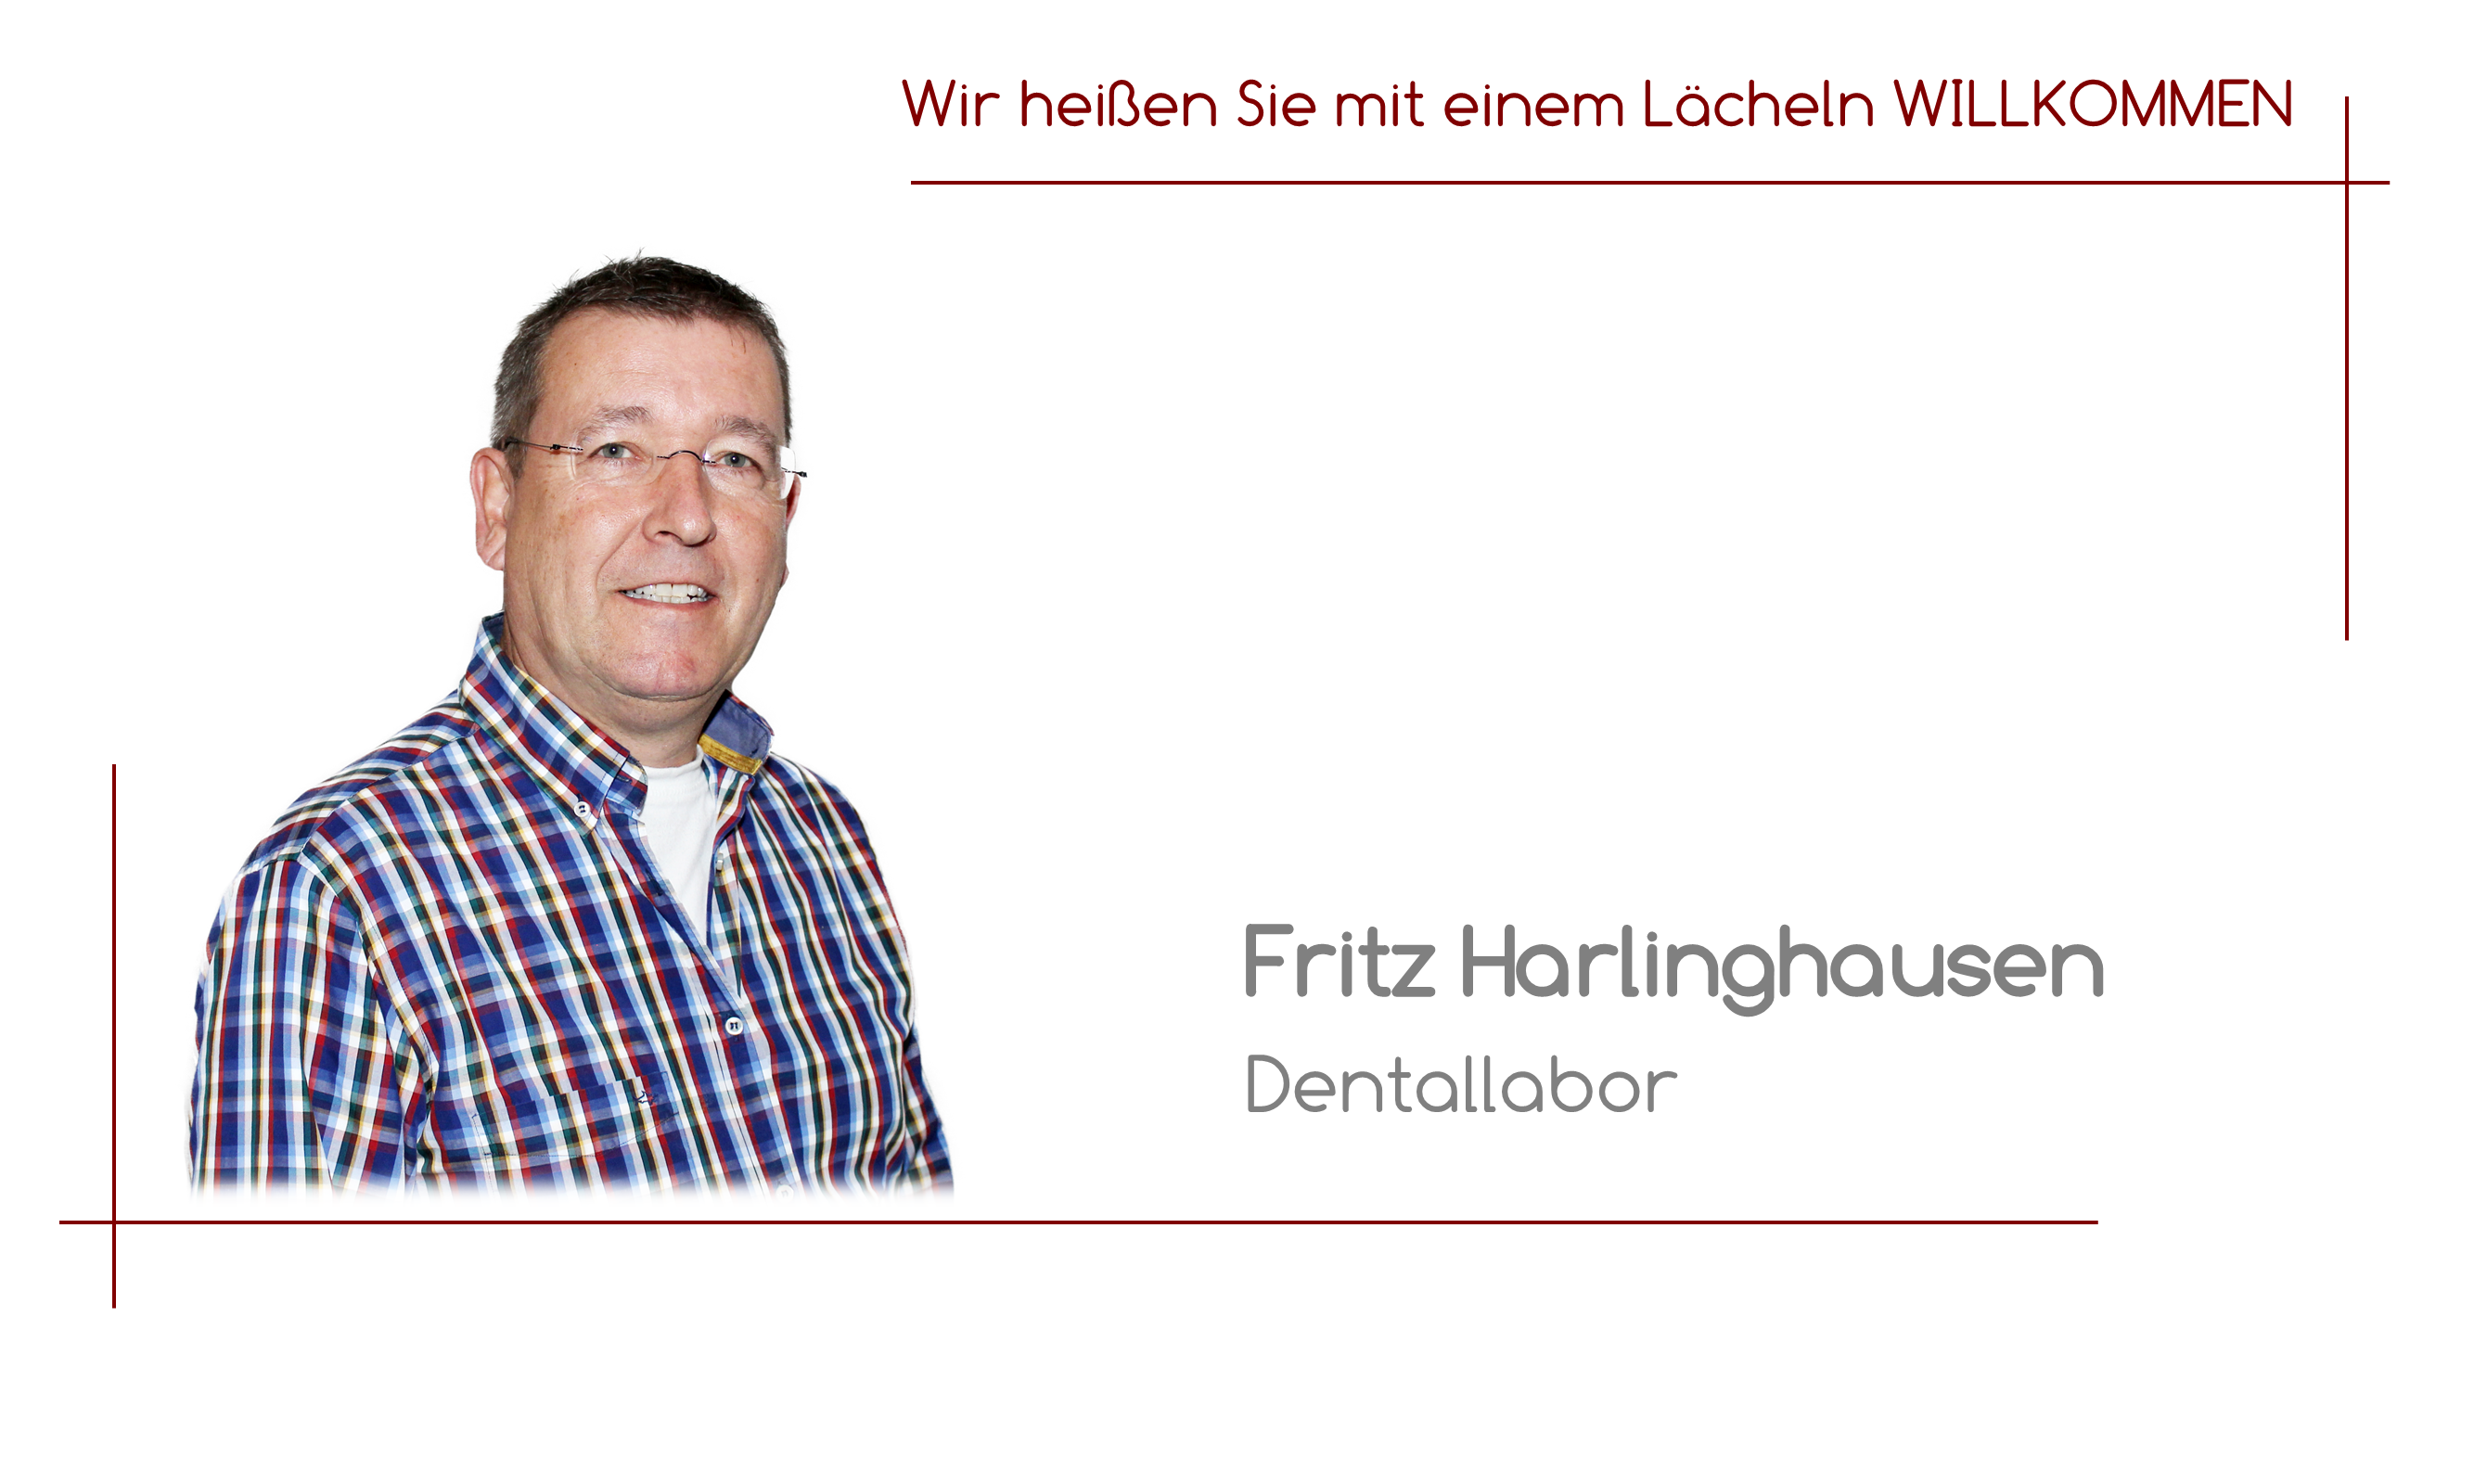 Fritz Harlinghausen - Dentallabor